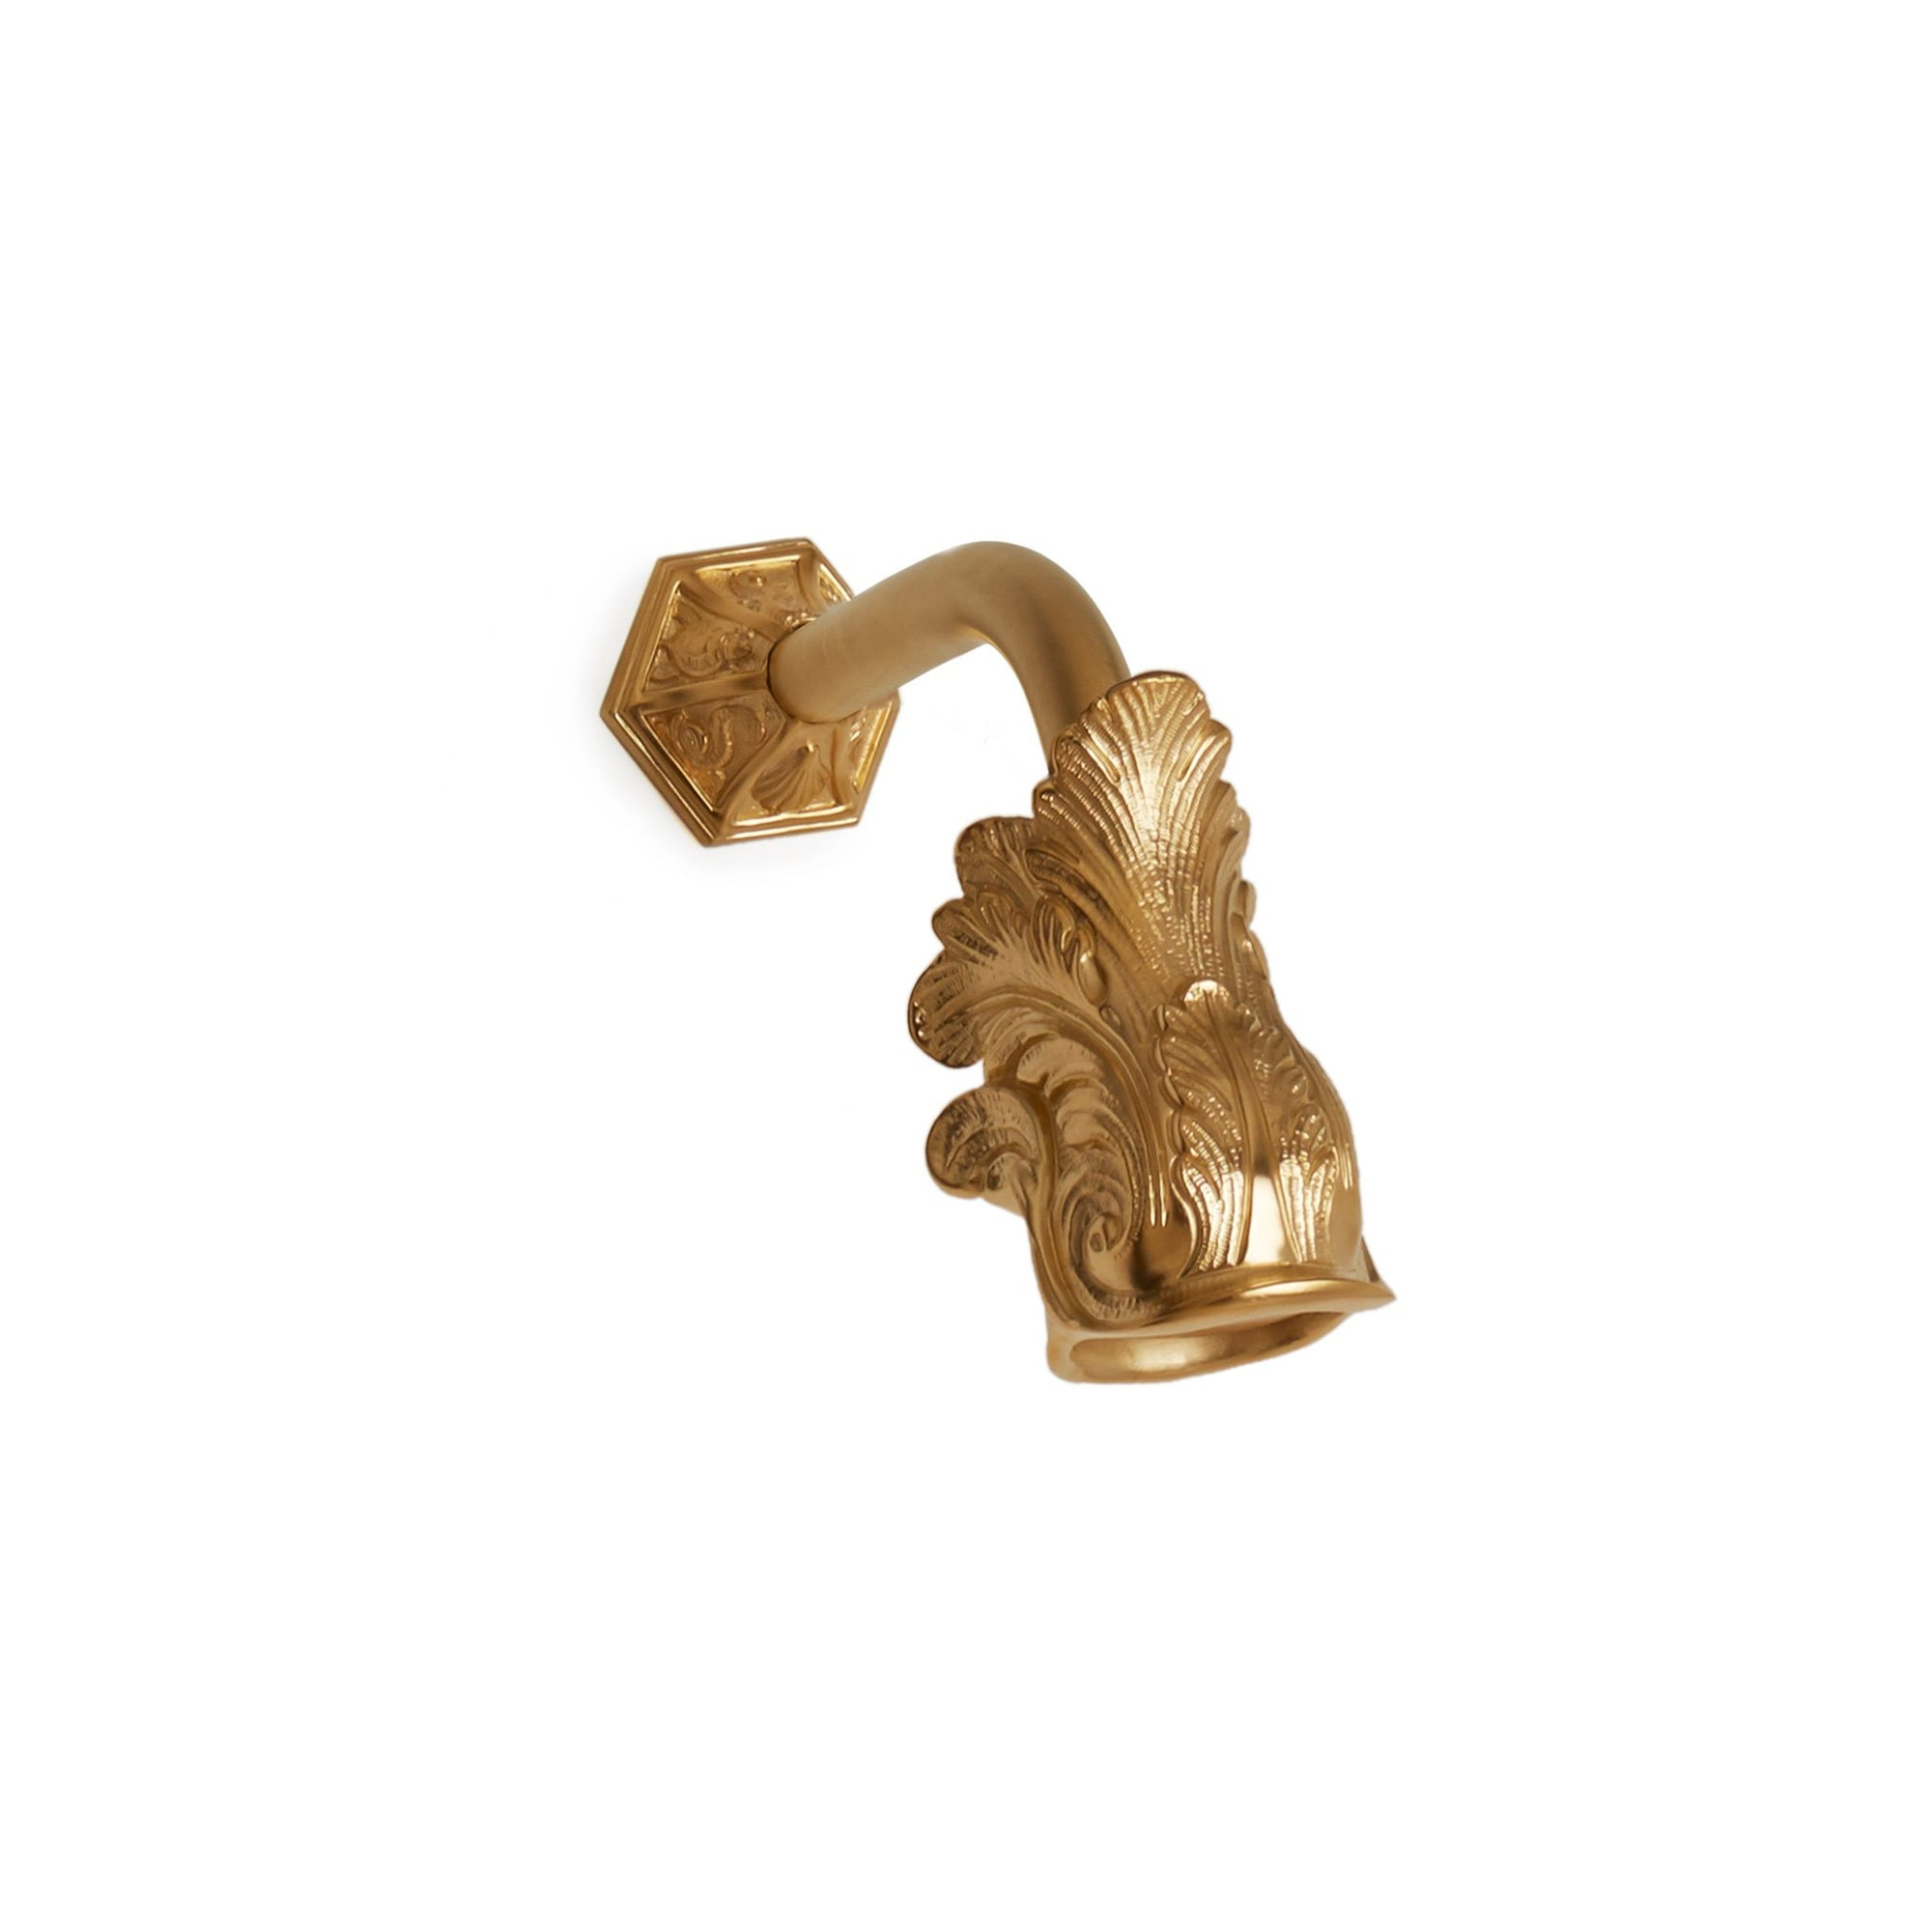 0847SHHD-GP Sherle Wagner International Dolphin Shower Head with Dolphin Flange in Gold Plate metal finish